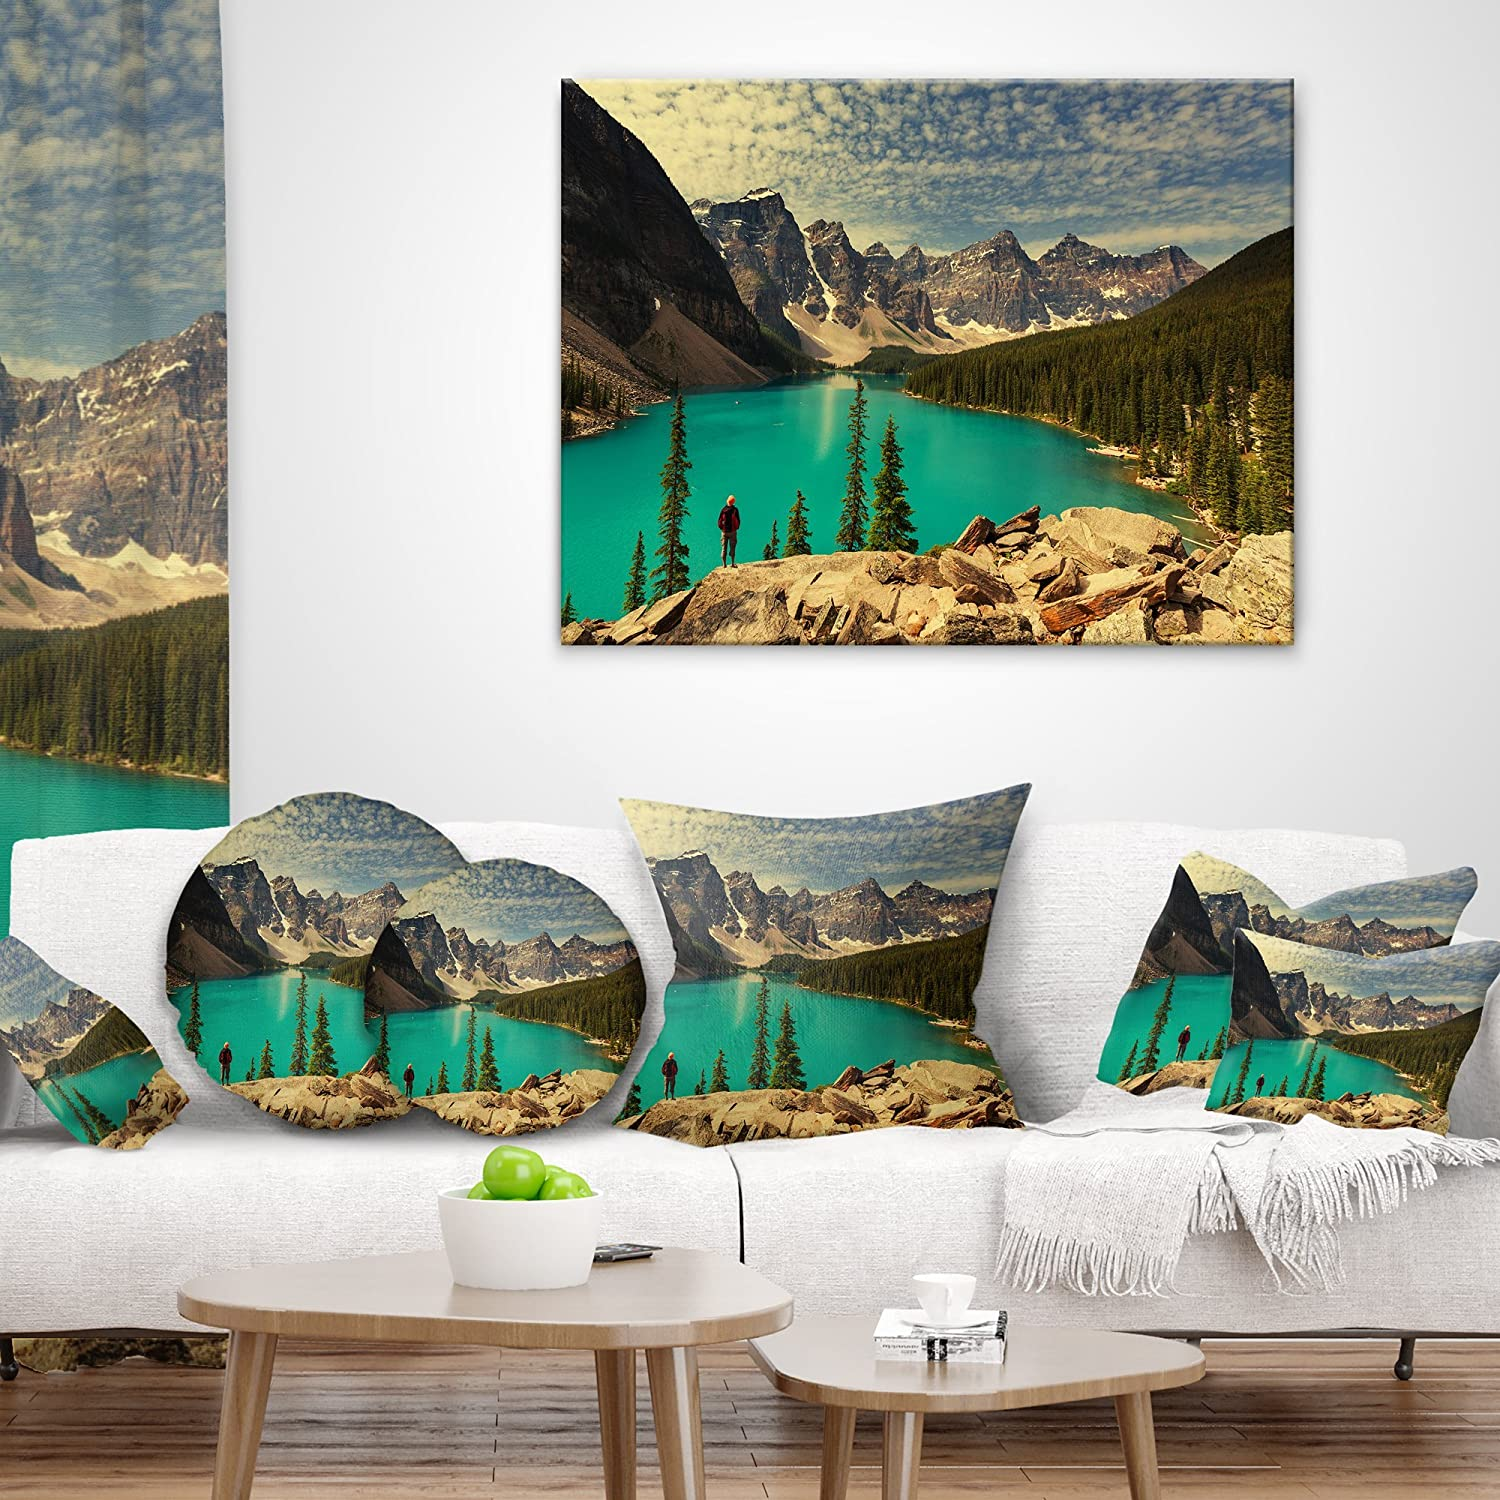 Sofa Throw Pillow 18 X 18 Designart Cu13793 18 18 Beautiful Moraine Mountain Lake Landscape Printed Cushion Cover For Living Room Throw Pillow Covers Decorative Pillows Inserts Covers